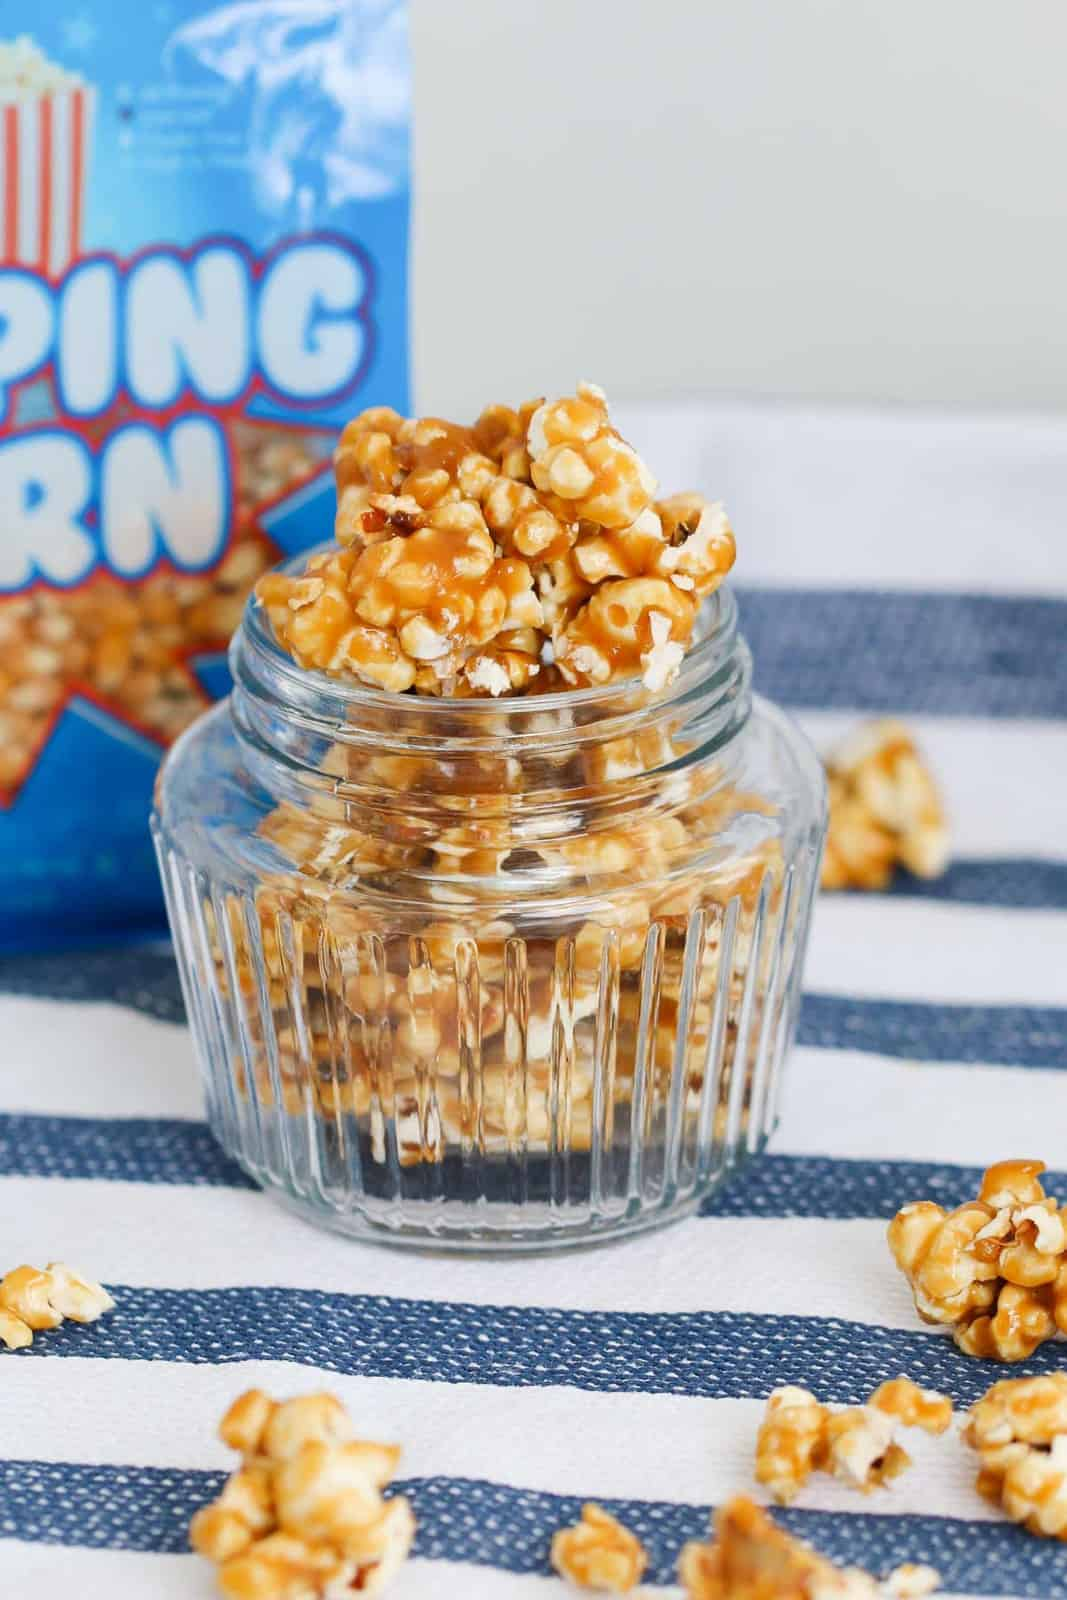 A glass jar full of salted caramel popcorn on a striped tablecloth with a packet of popping corn in the background